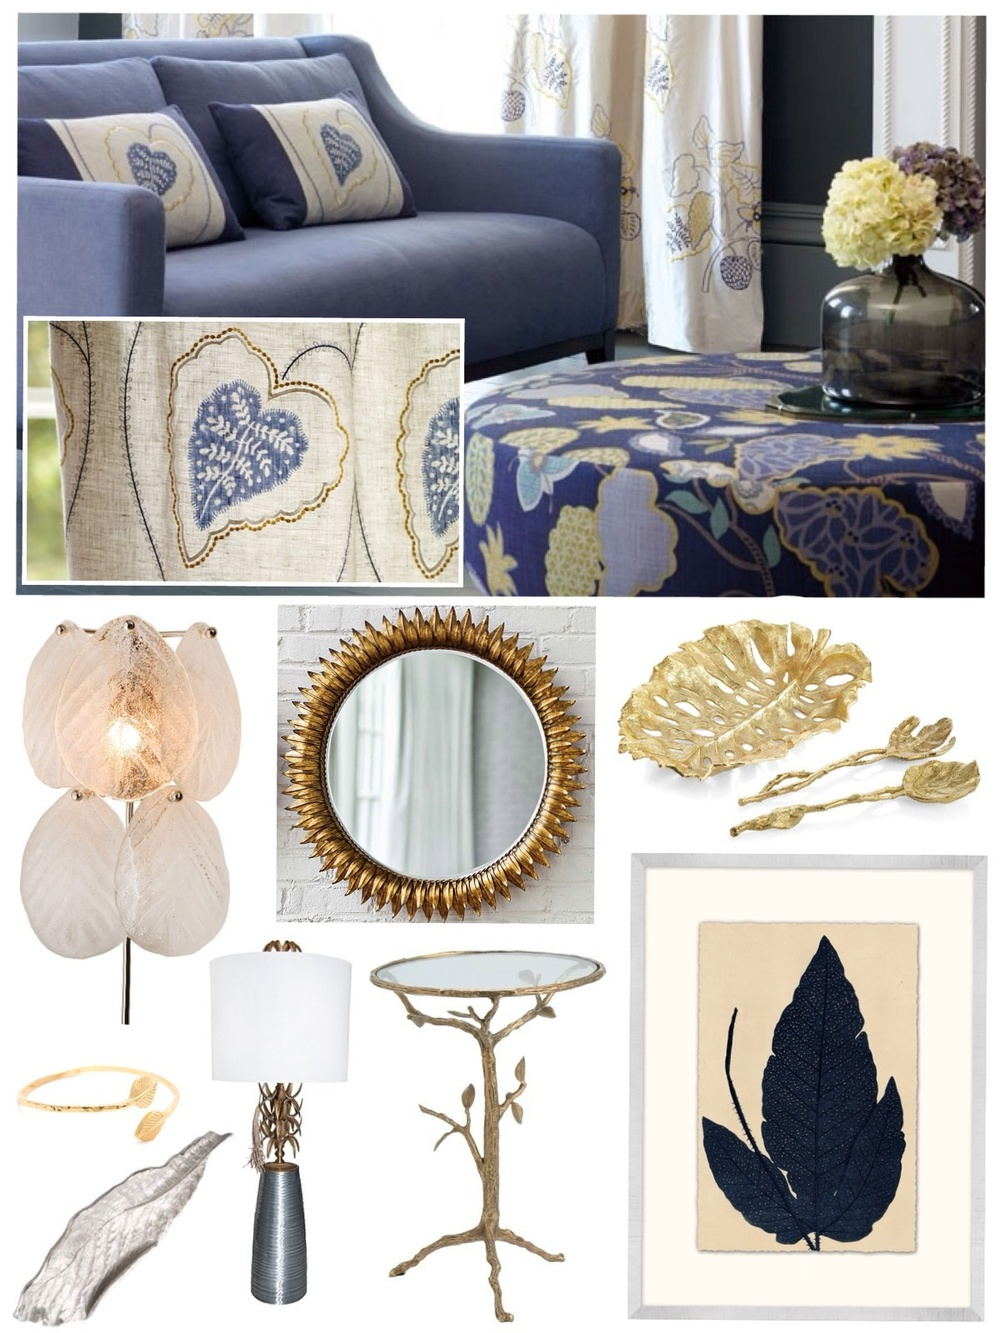 Available through Savvy: leaf motif textiles, trays, serving platters, utensils, lamps, table, mirror, artwork and bracelet. Please contact for more information.  Kimberly Kowalski, Allied ASID